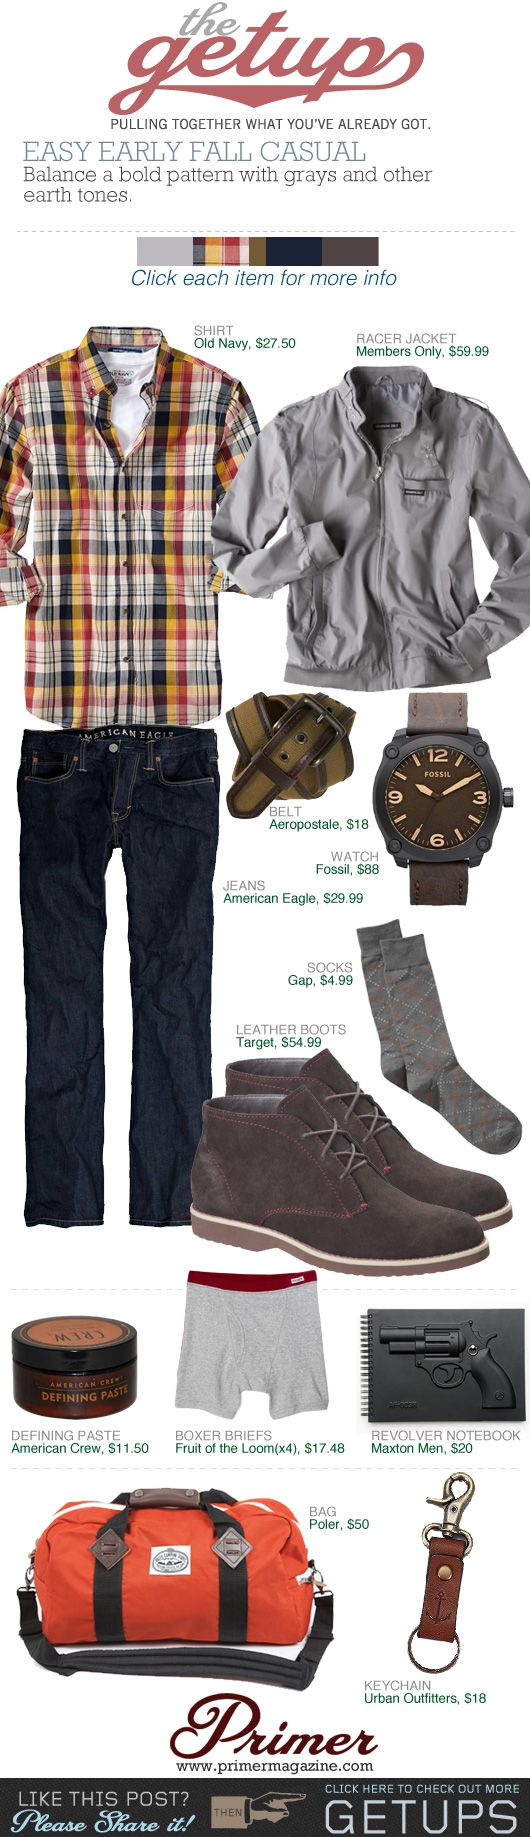 #StealThisStyle for an Easy Early Fall Casual Getup (@ Primer)